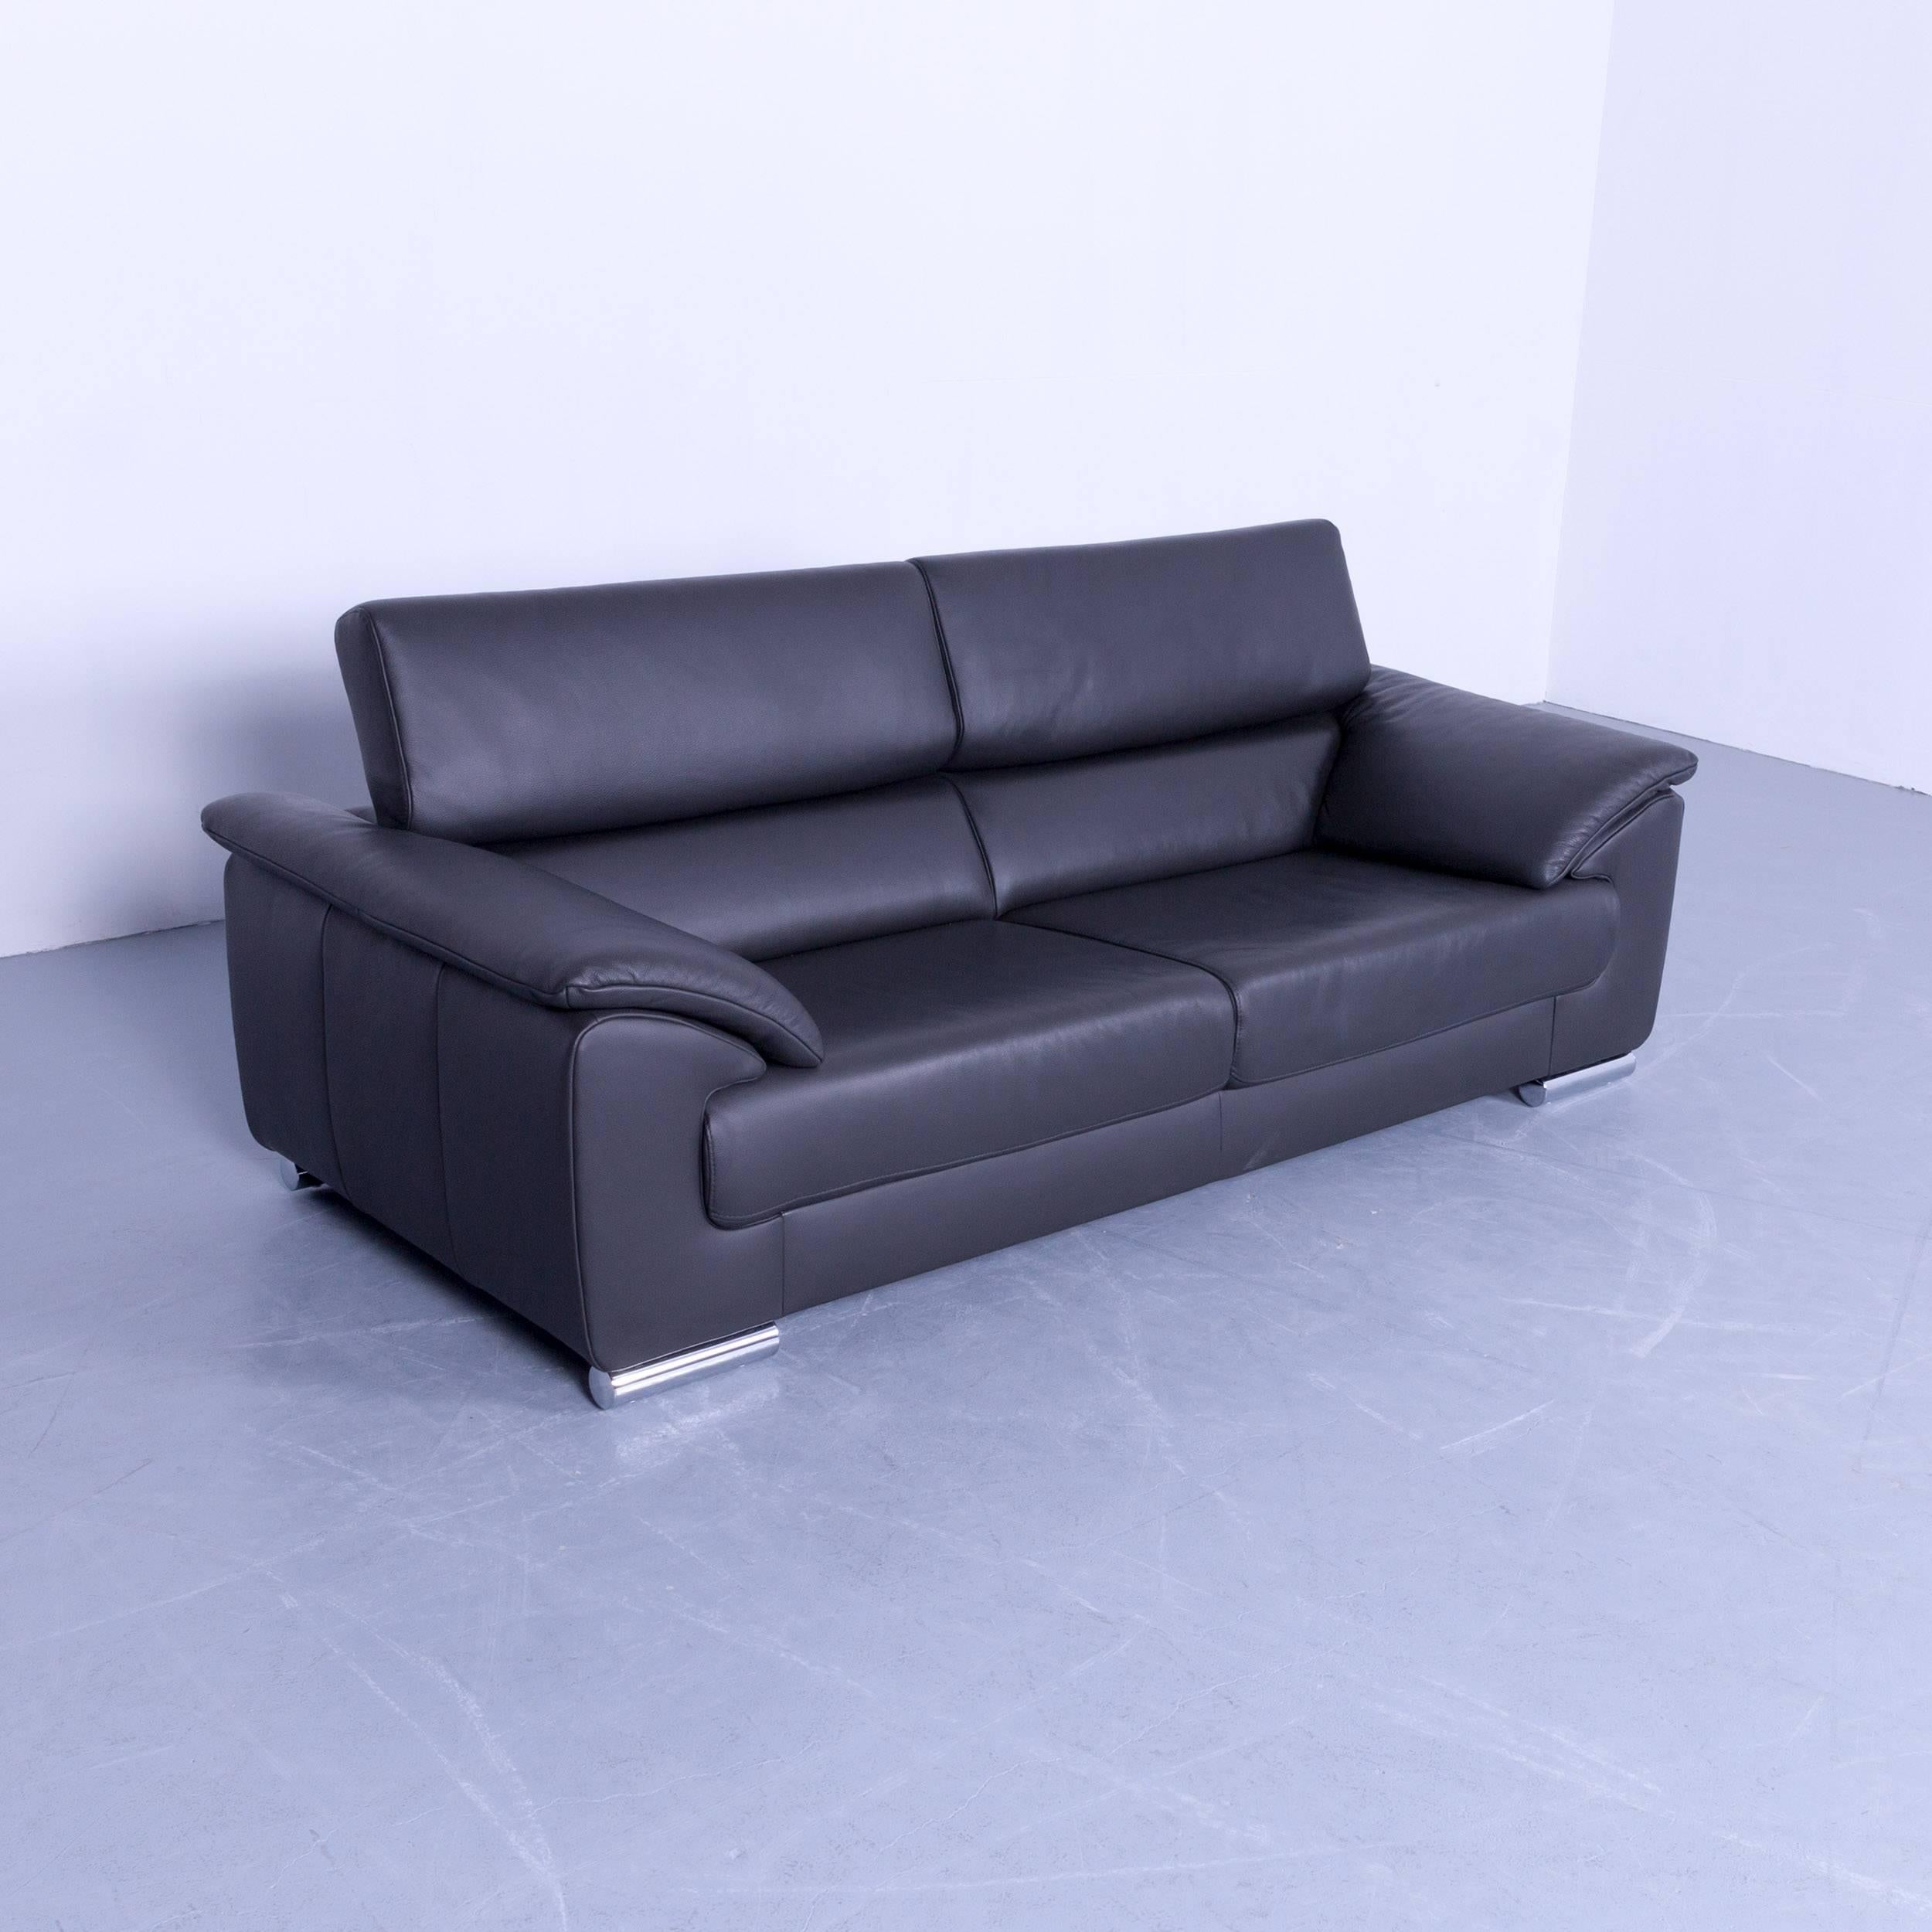 Ewald Schillig Designer Sofa Ewald Schillig Brand Blues Designer Sofa Anthracite Dark Grey Leather Couch